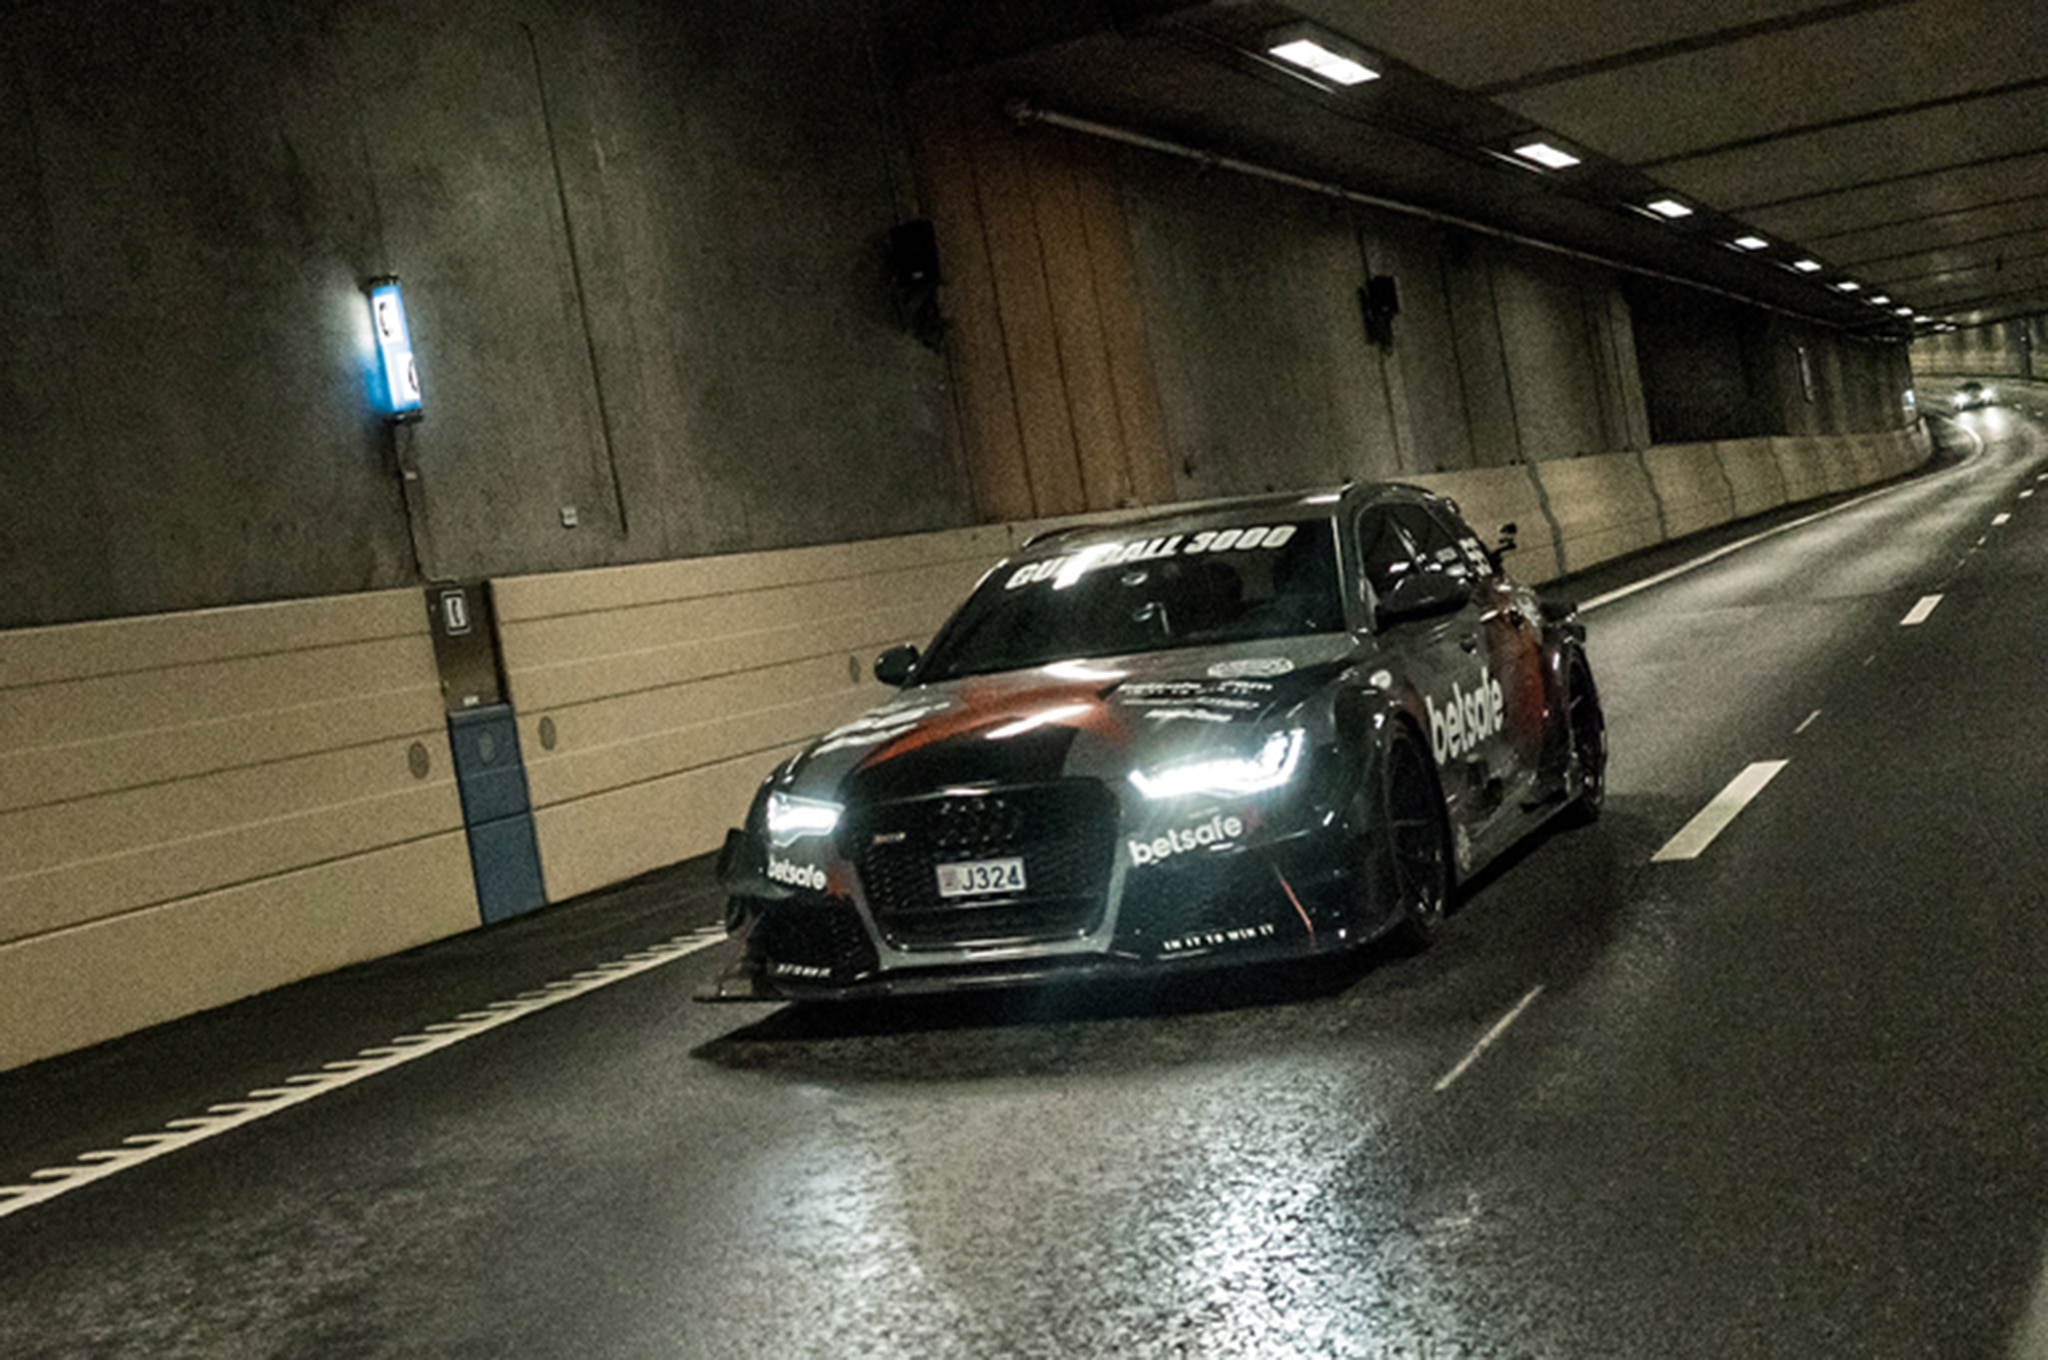 Jon Olsson S Insane Audi Rs6 Dtm Stolen And Burned To The